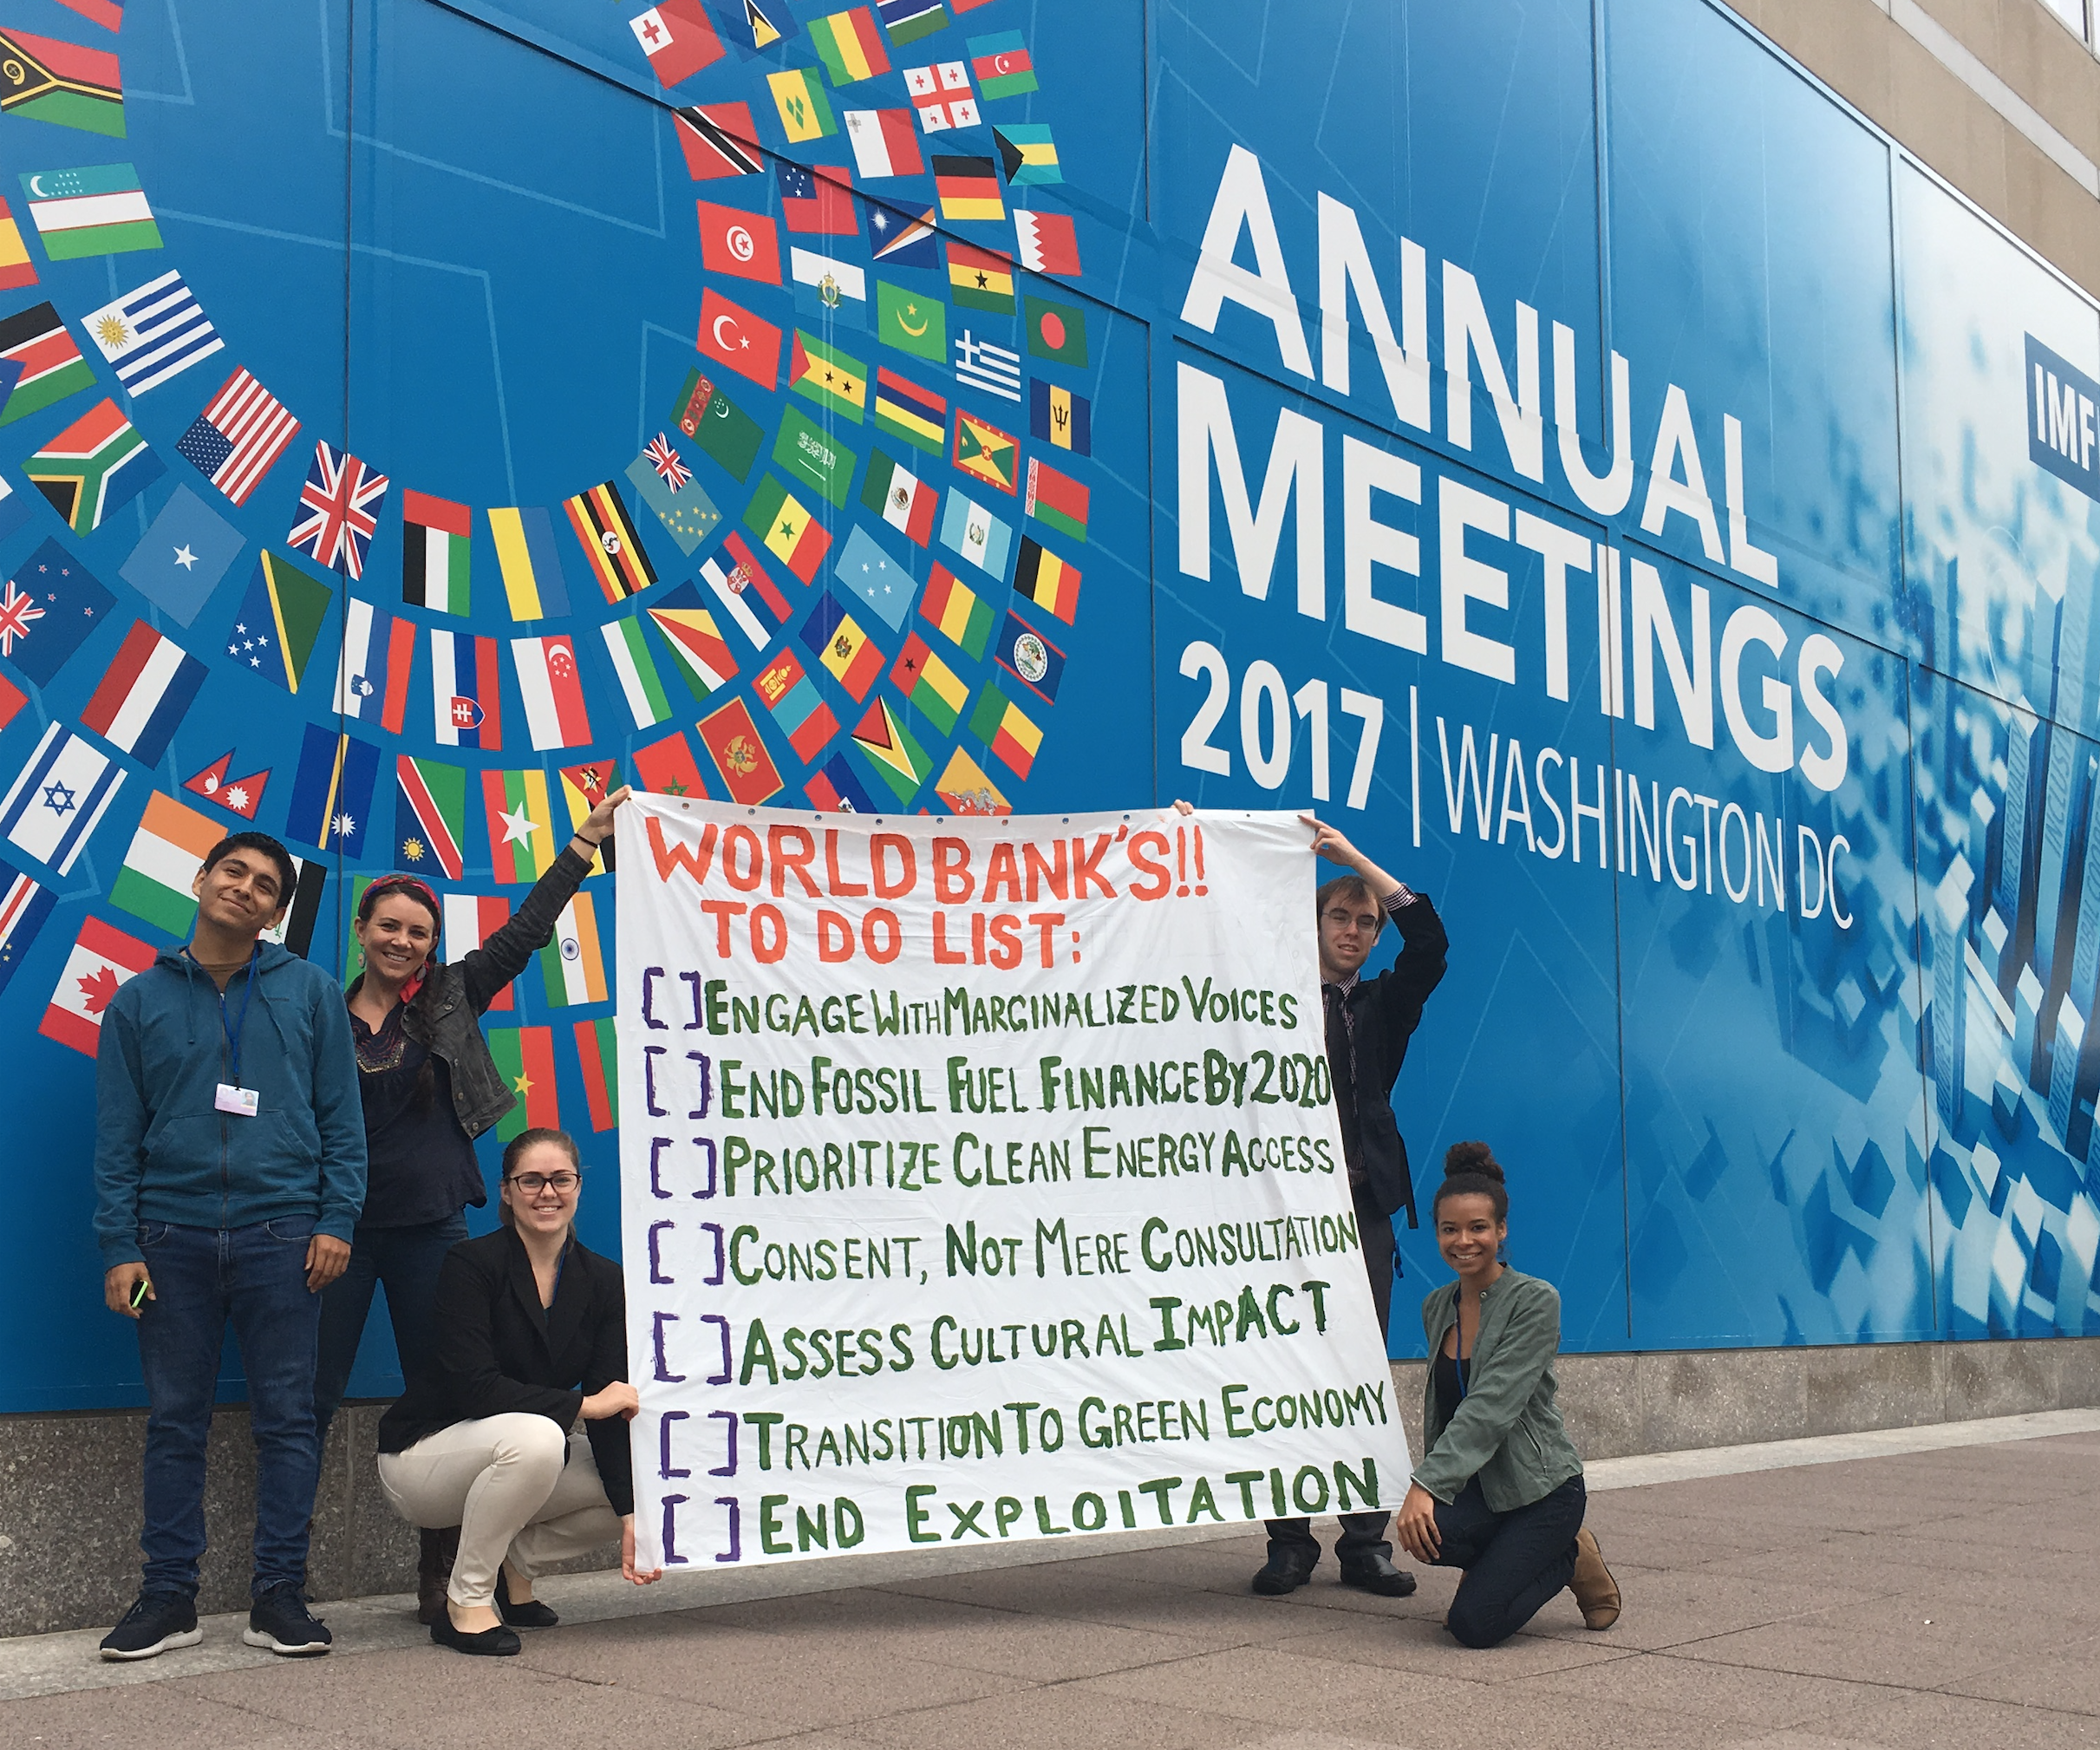 sustainUS World Bank Delegation 2017  - Delegation of U.S. Youth: Calling for the World Bank to end both fossil fuel investment by 2020 & indigenous non-consent